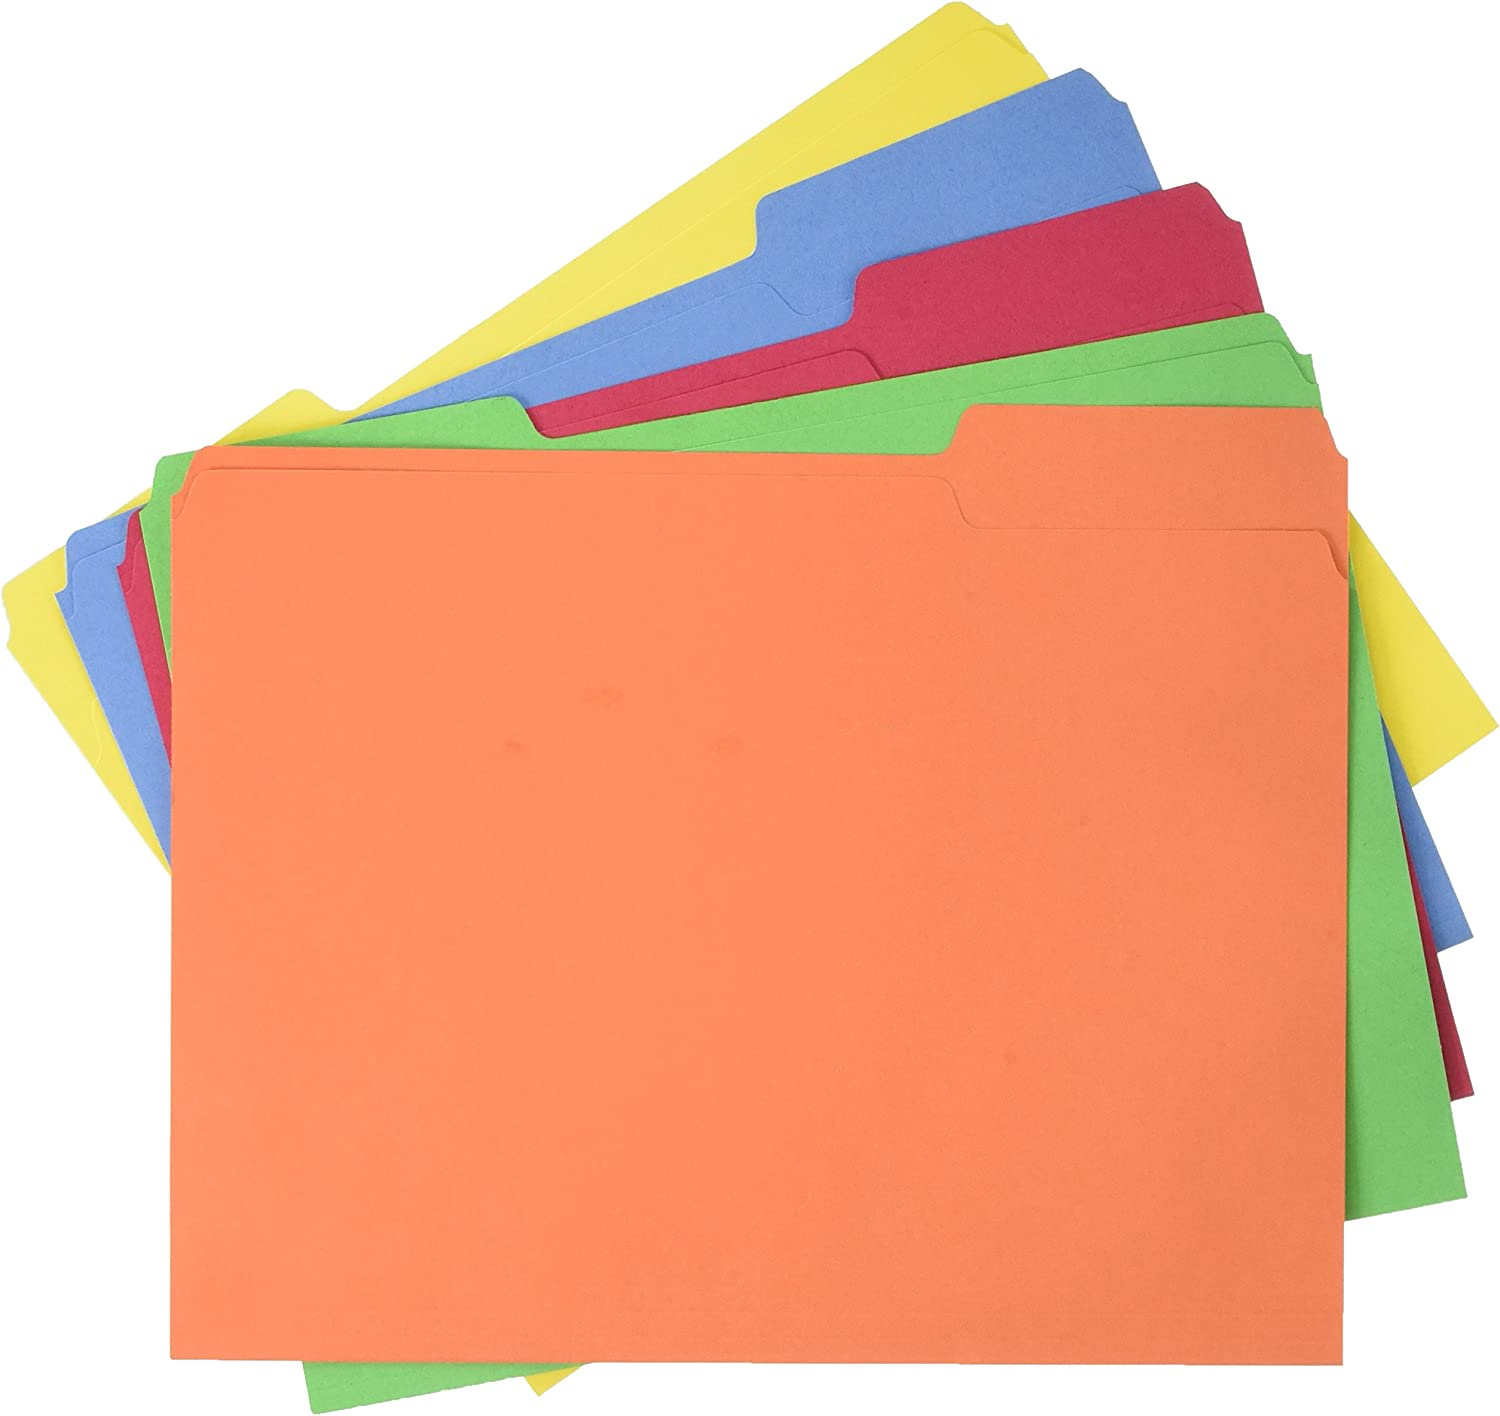 Basics AMZ401 File Folders - Letter Size (100 Pack) – Assorted Colors : Office Products